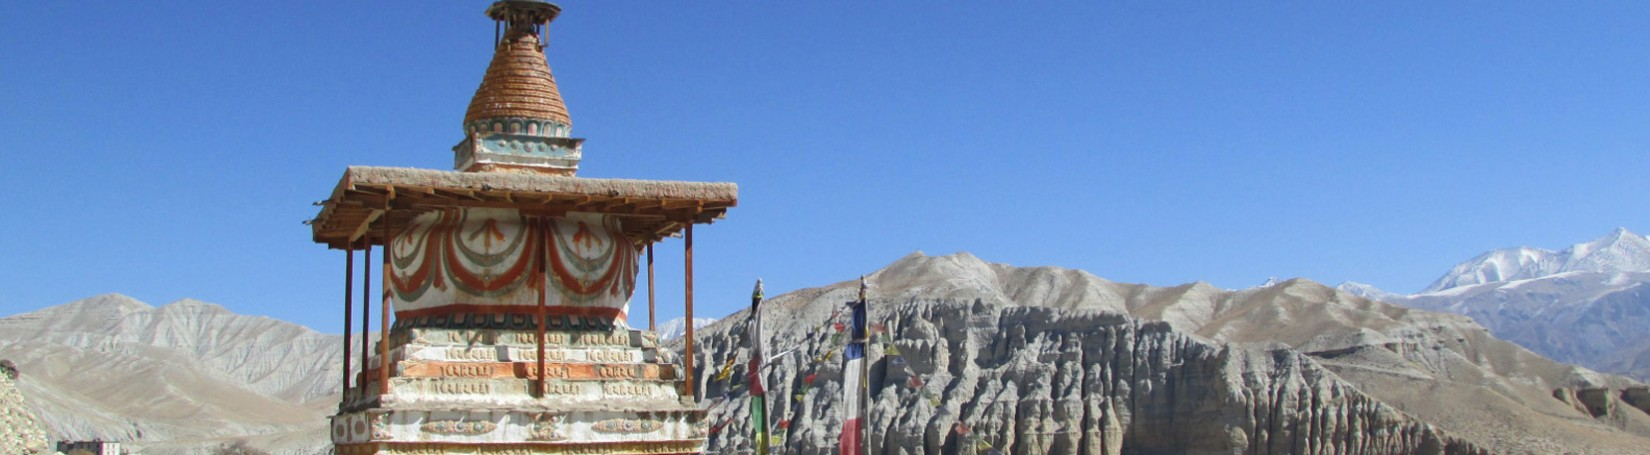 Old Monastery and scenic landscape in Upper Mustang